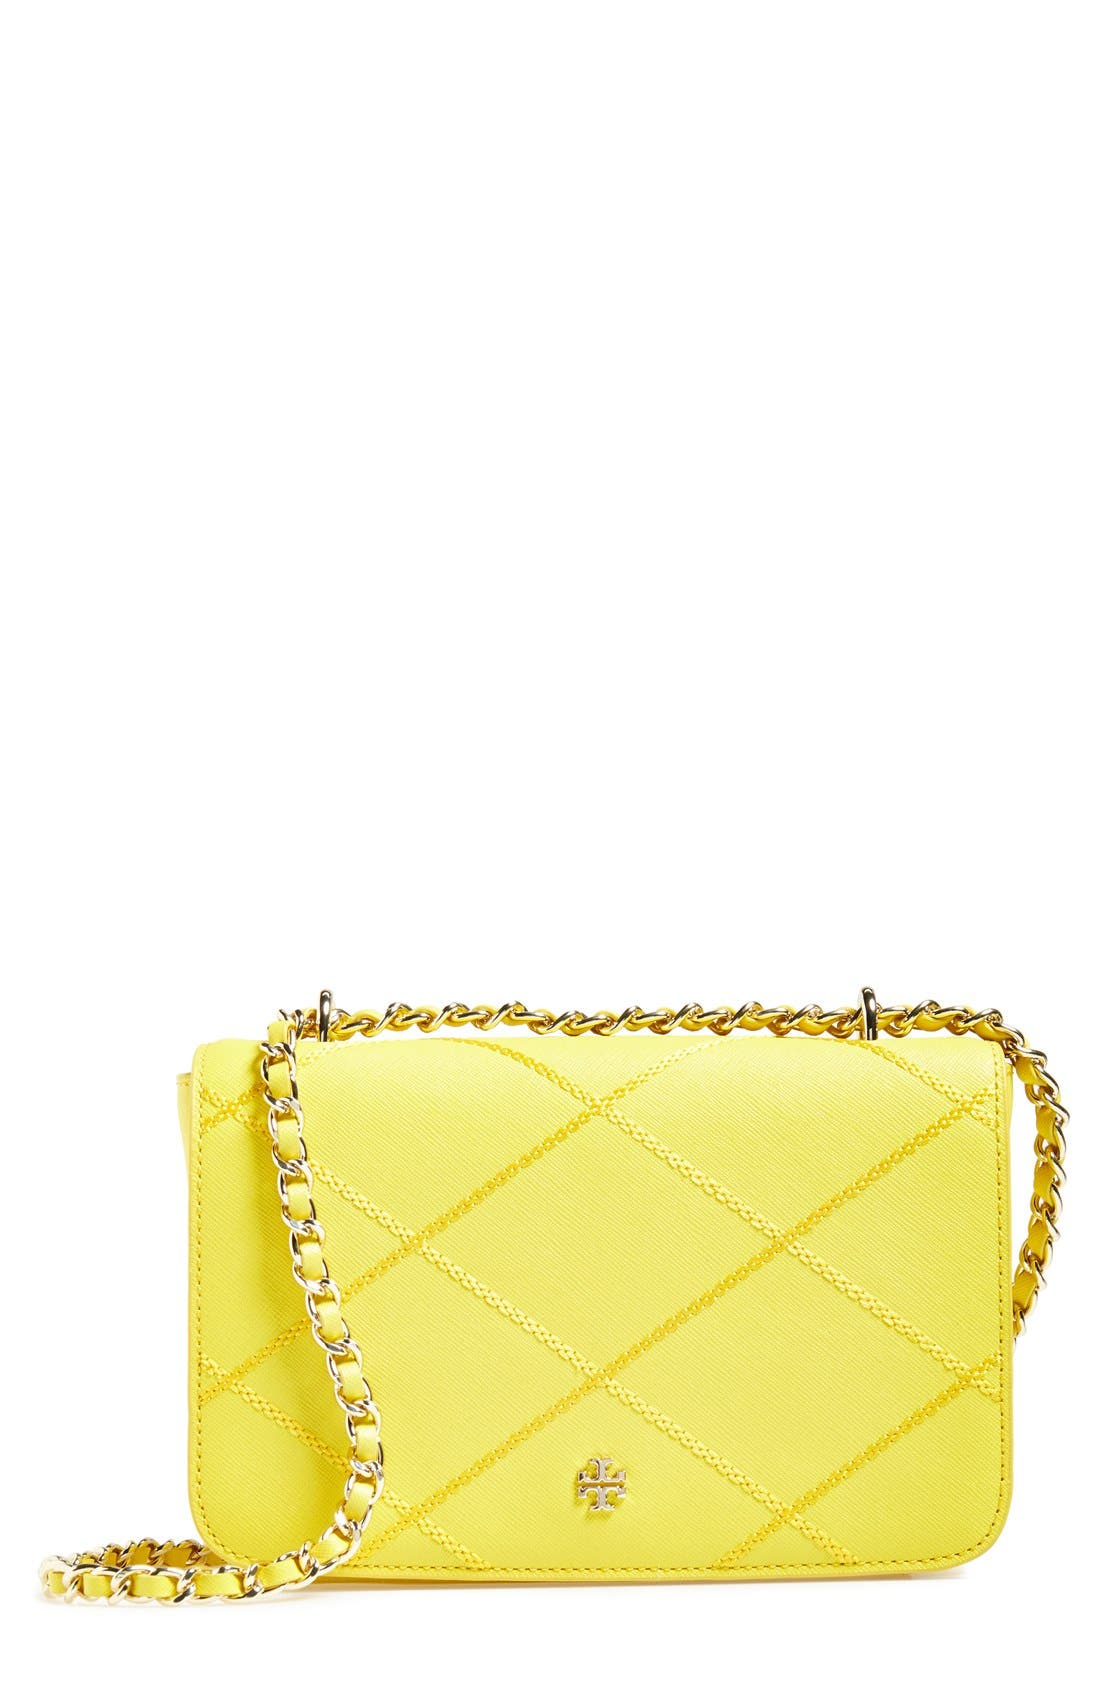 Main Image - Tory Burch 'Robinson' Stitched Leather Shoulder Bag